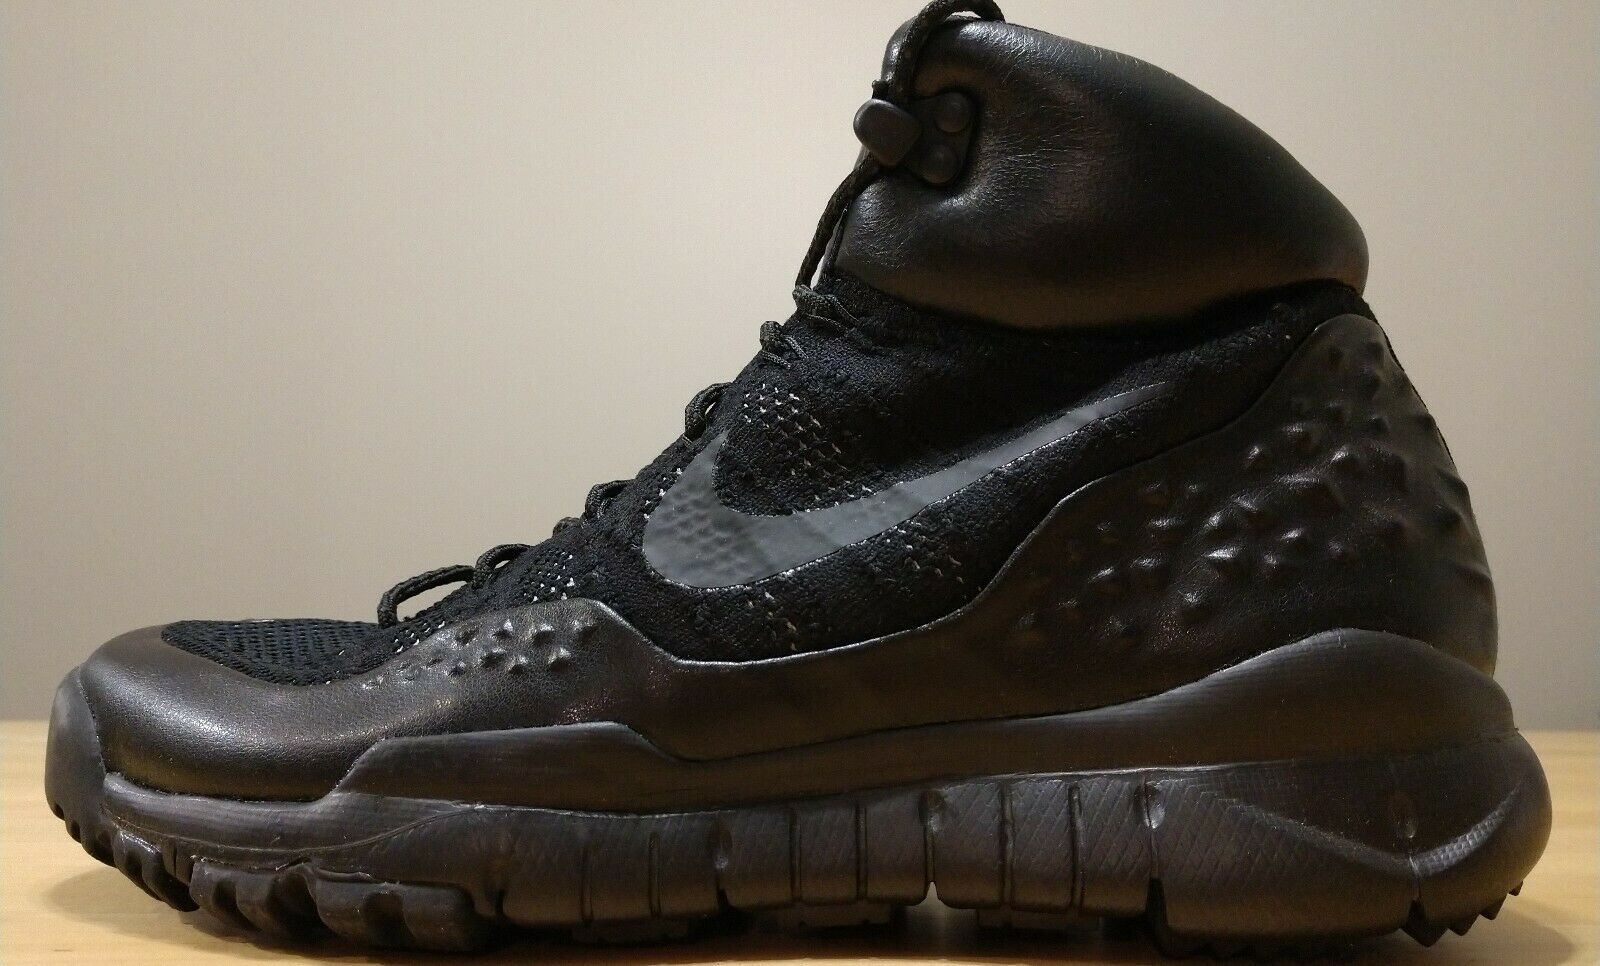 250 Nike Lupinek Flyknit Sneakerboot Boots Black Anthracite Size 8.5 862505-002